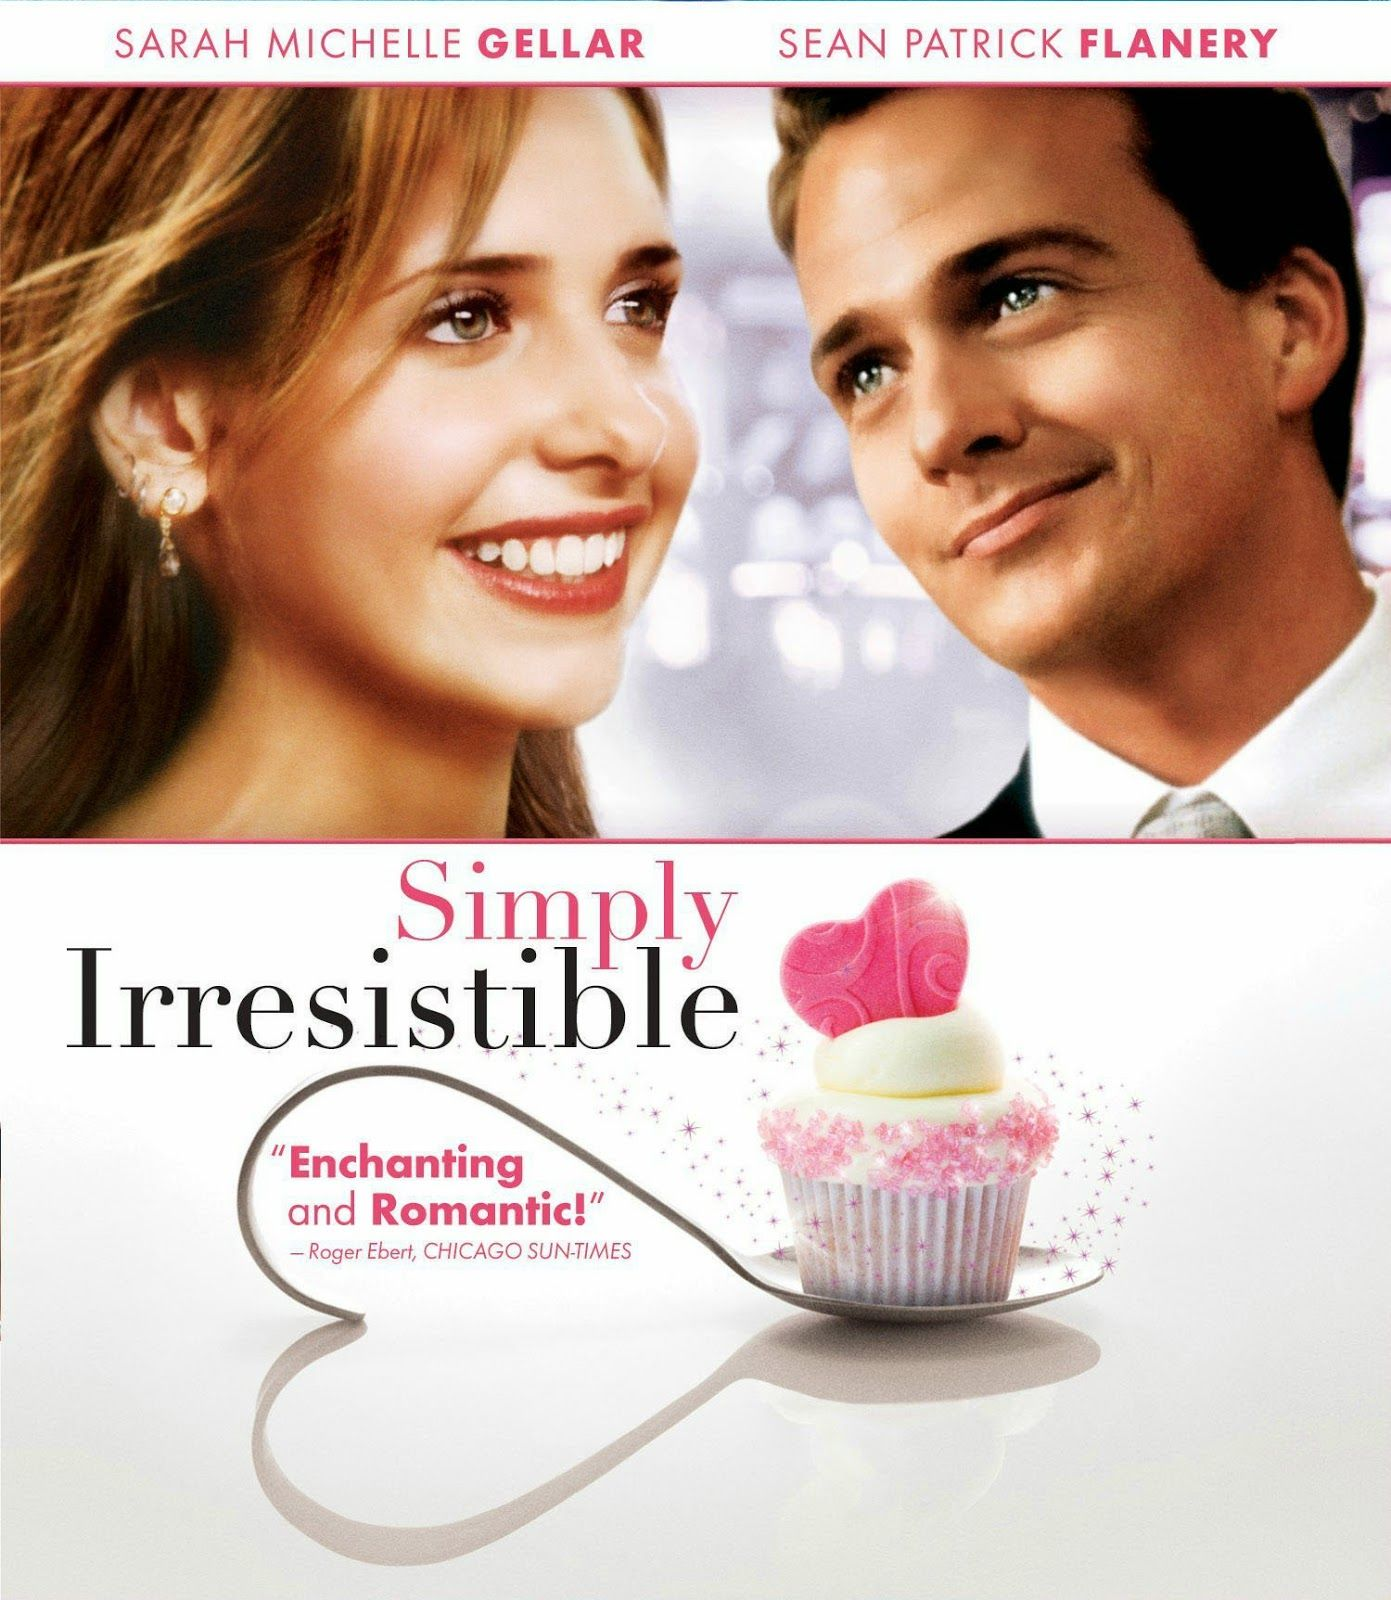 Top Food Movie List: Simply Irresistible Click Link To See